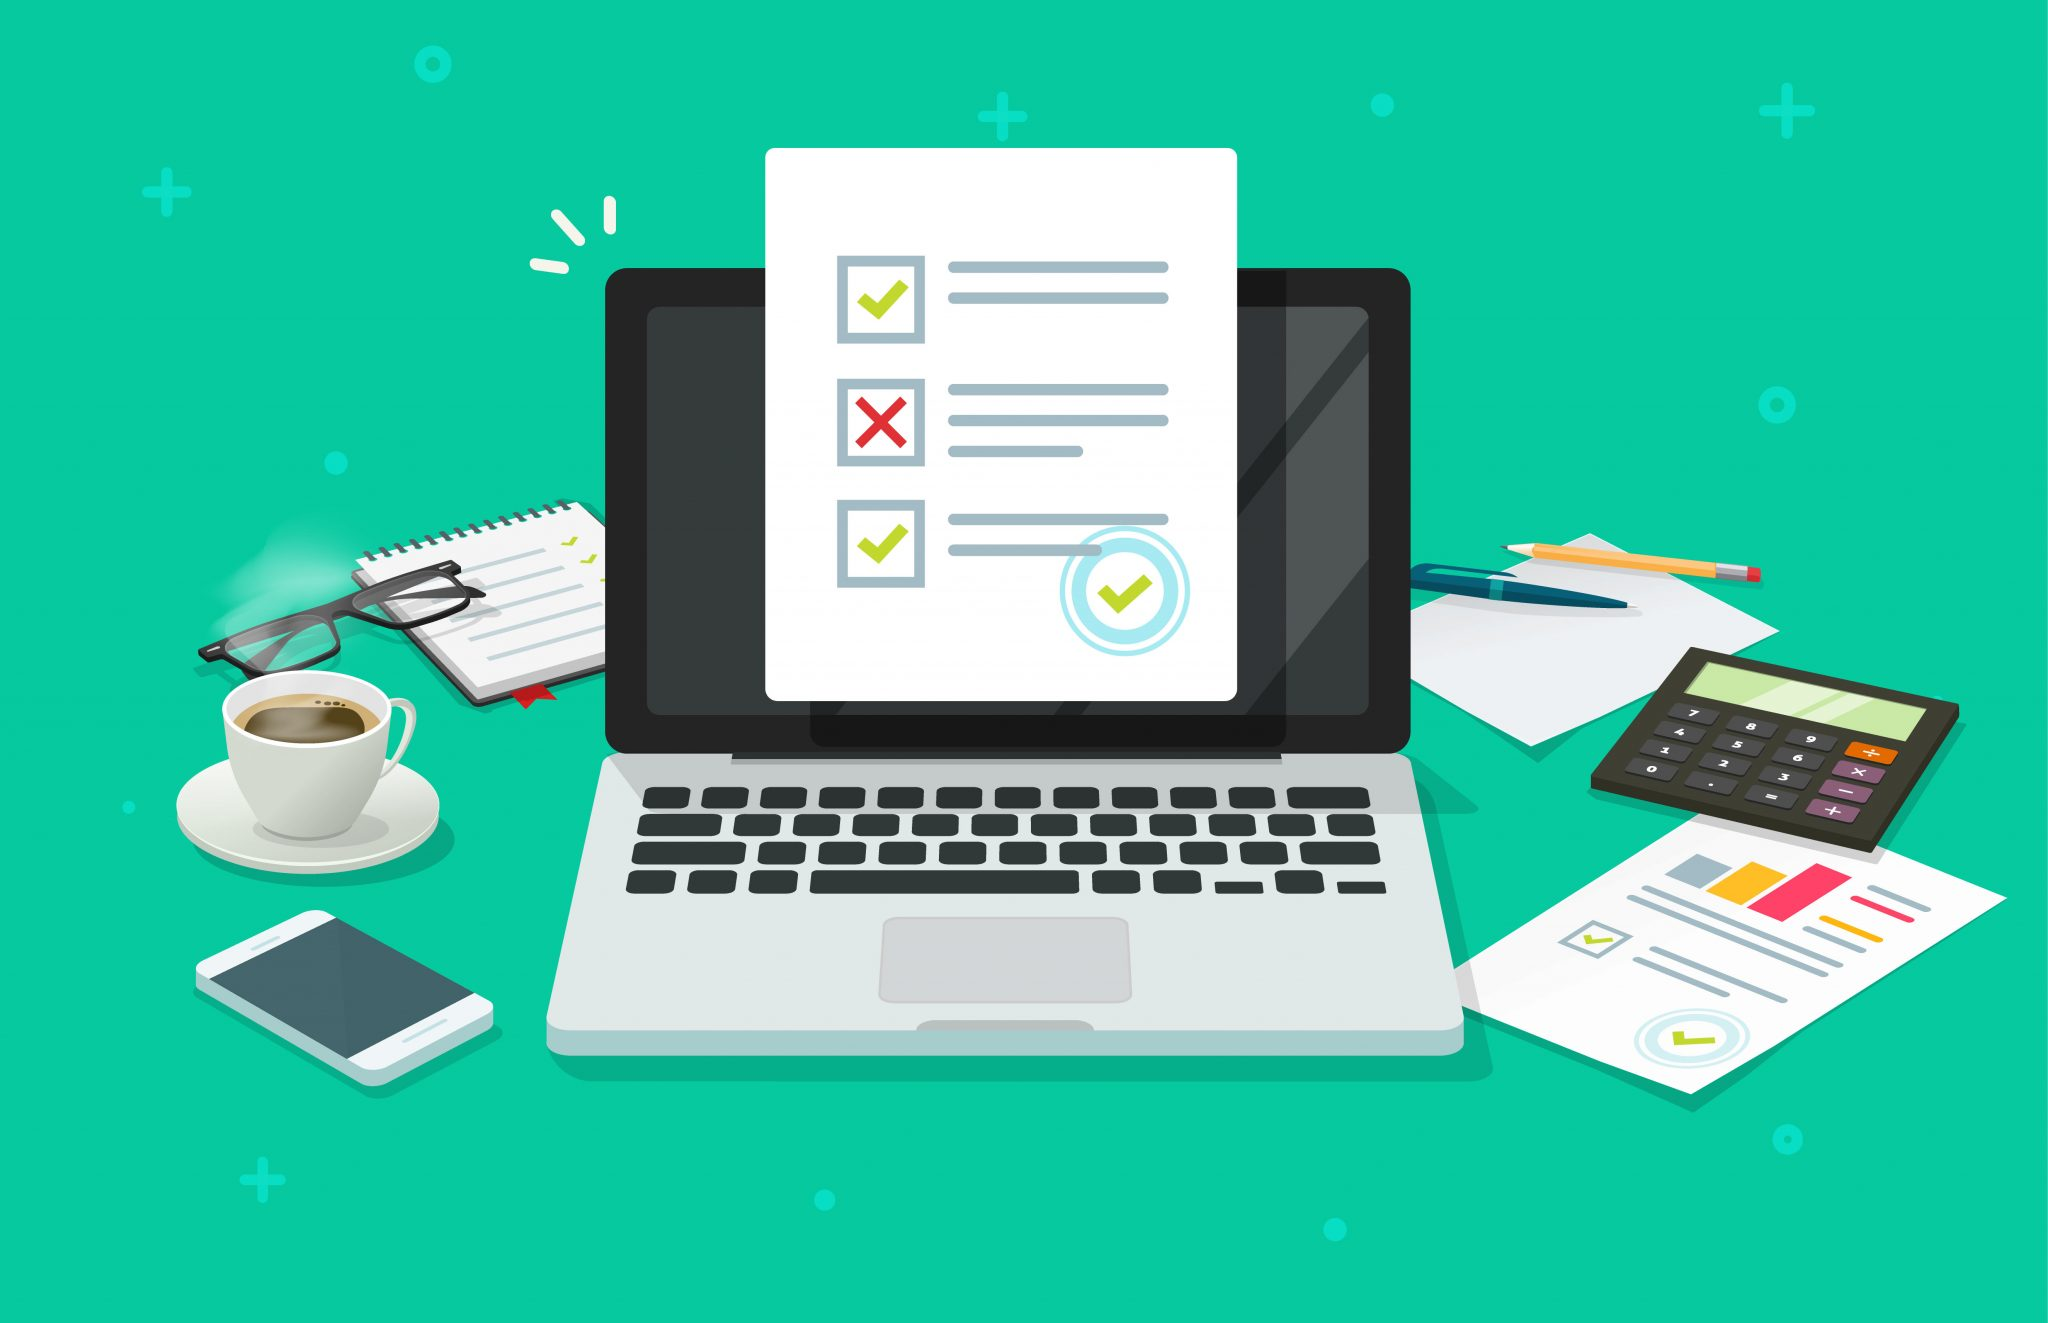 Online form survey on laptop vector illustration, working on computer quiz exam paper sheet document, on-line questionnaire results on desktop table flat cartoon, digital check list or internet test